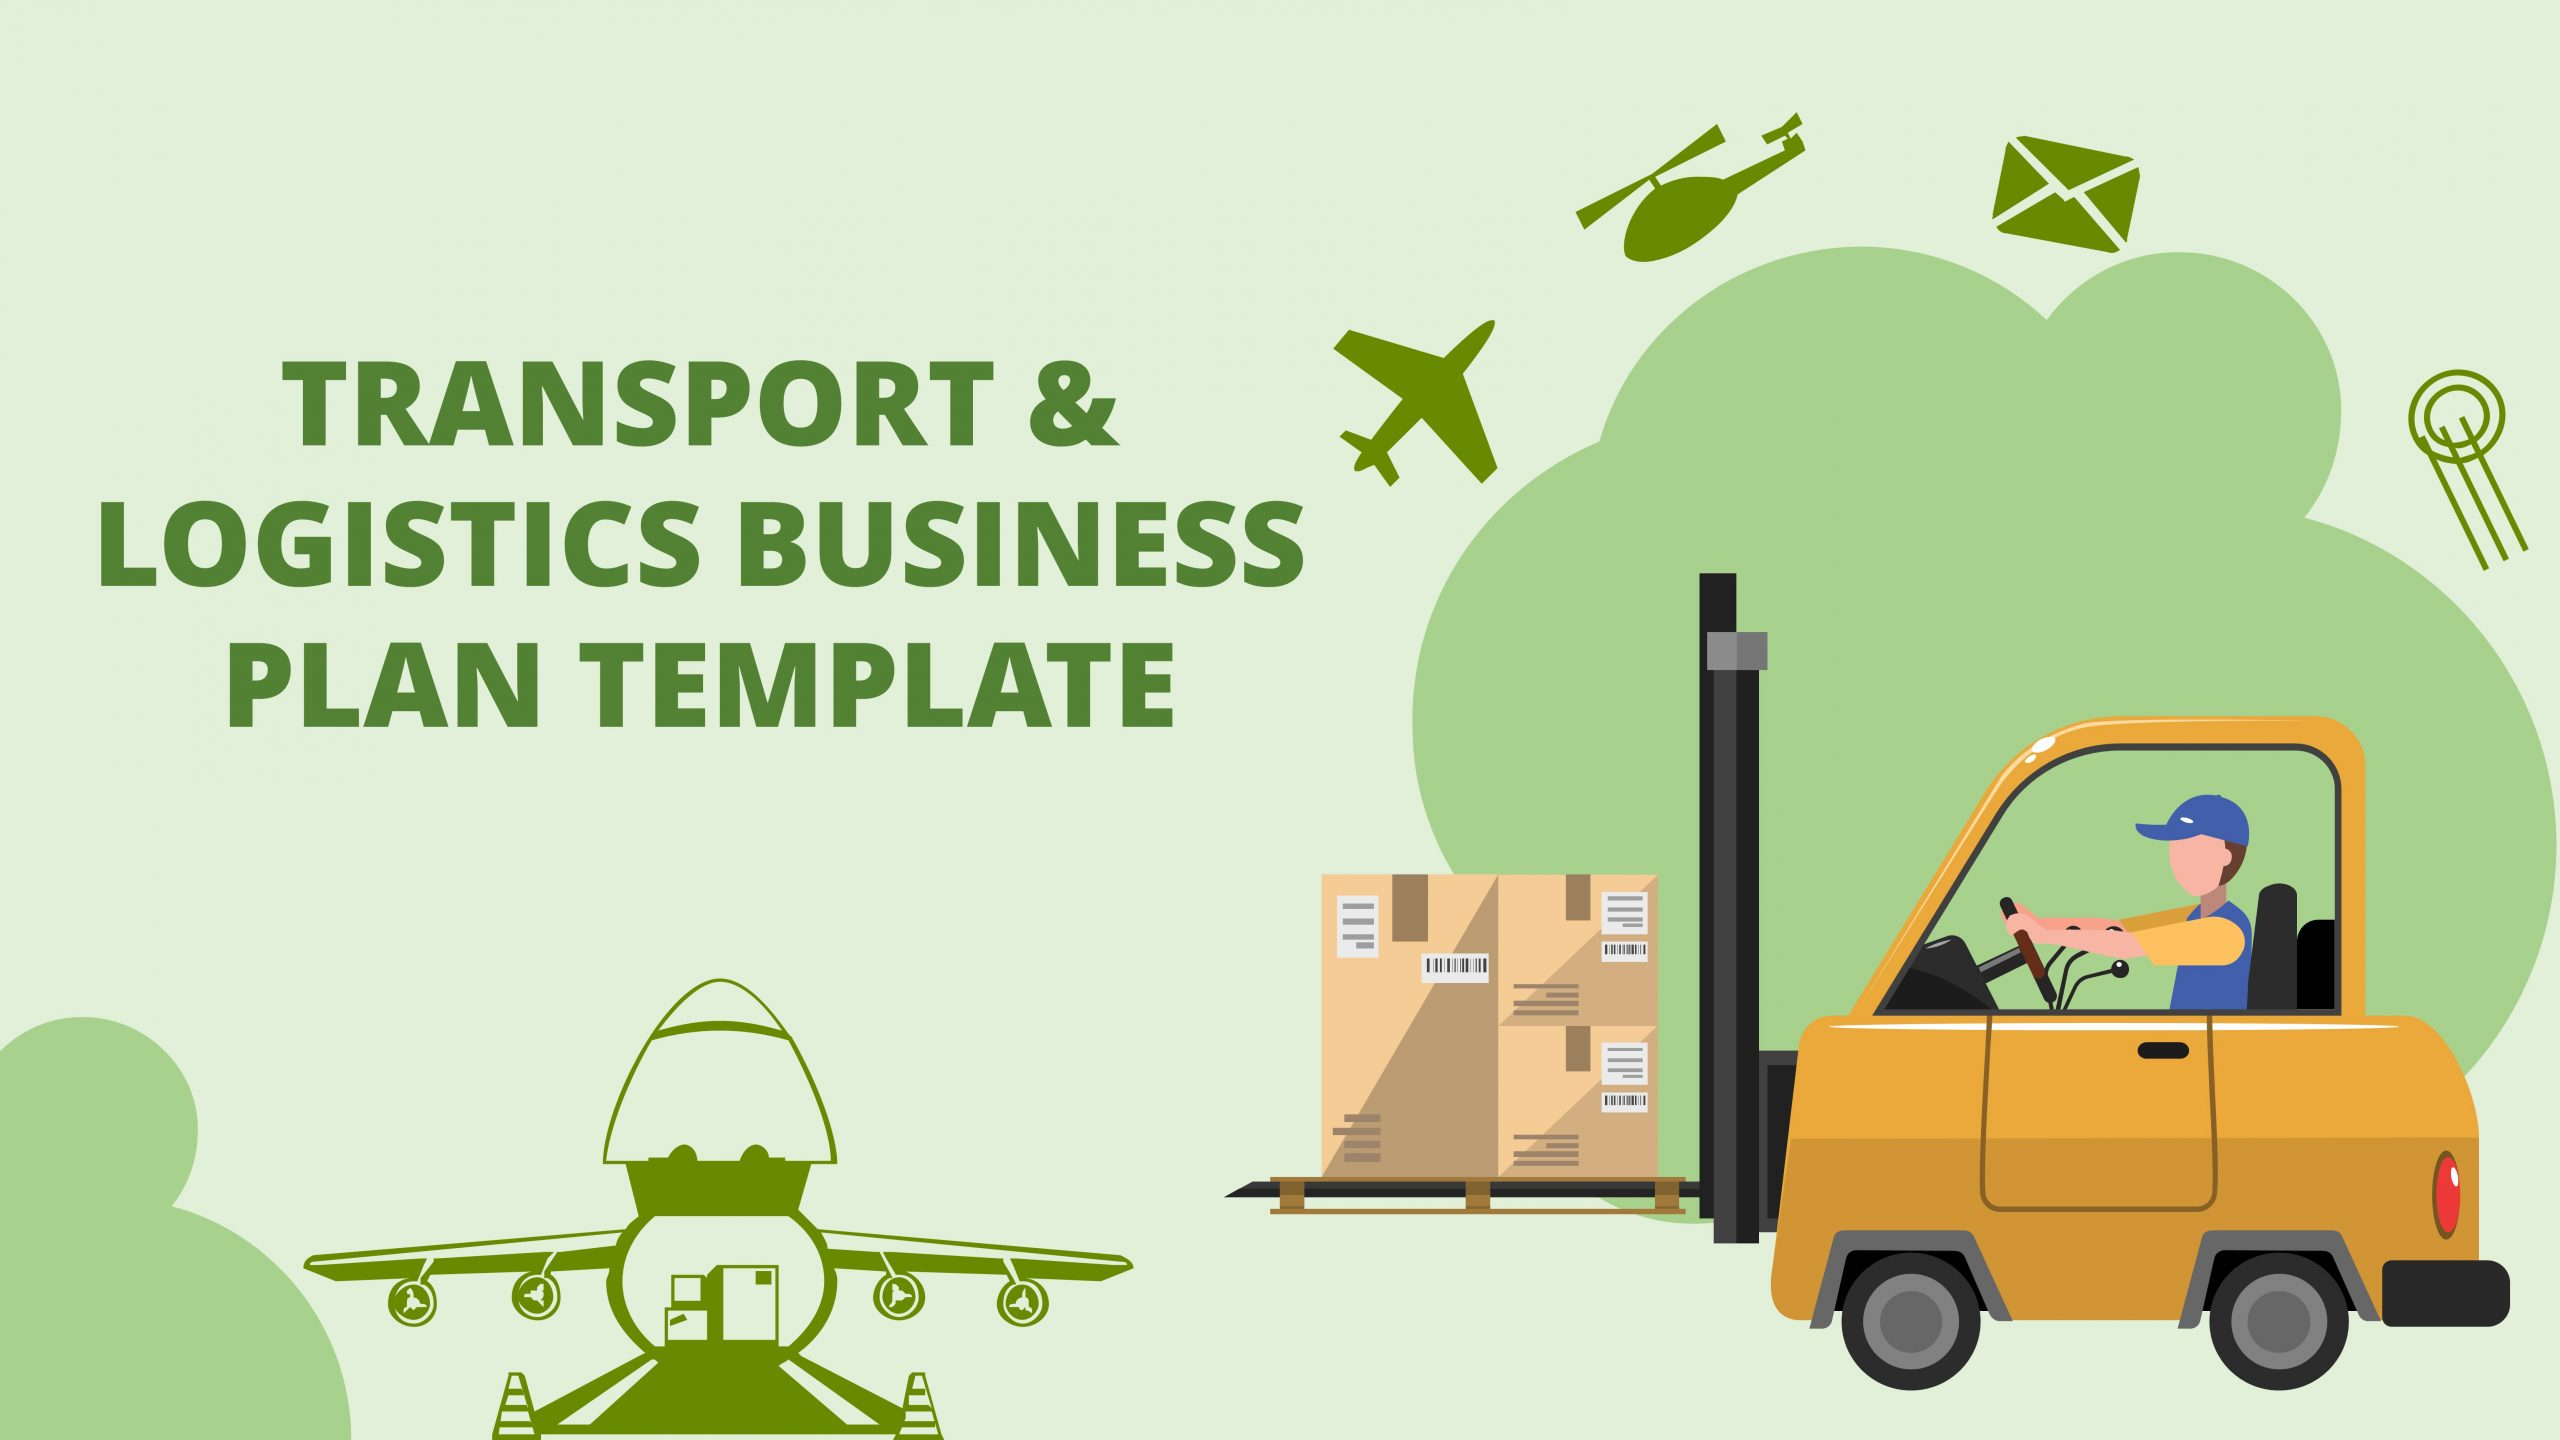 Transport-Logistics-Business-Plan-1